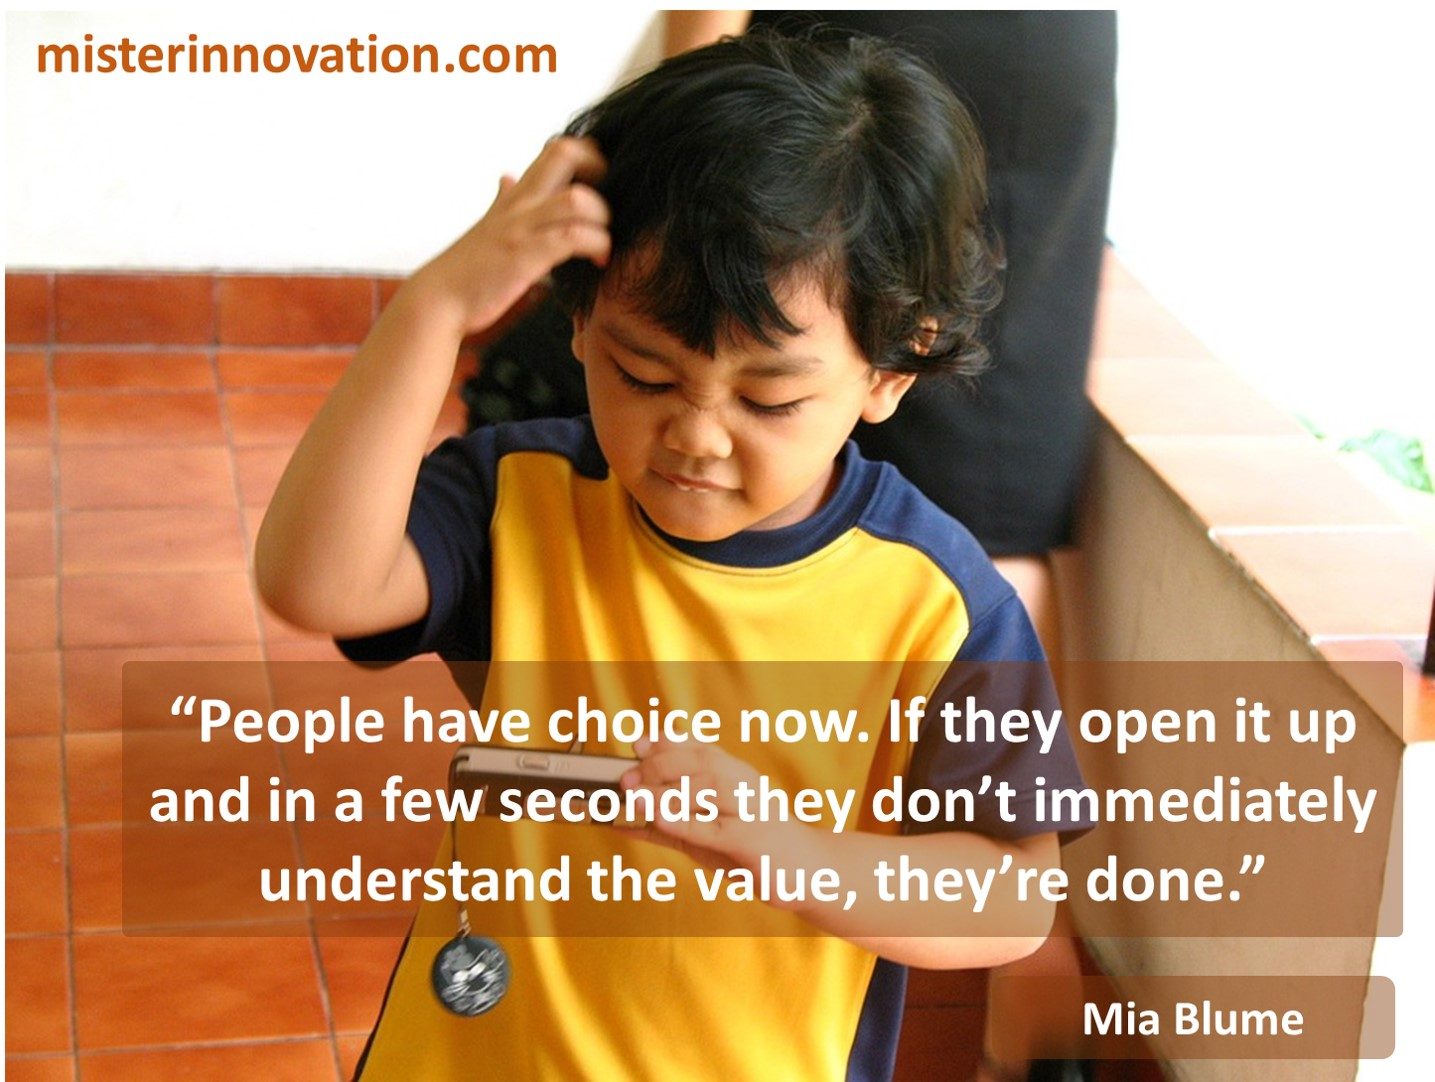 Mia Blume quote about abundant choice